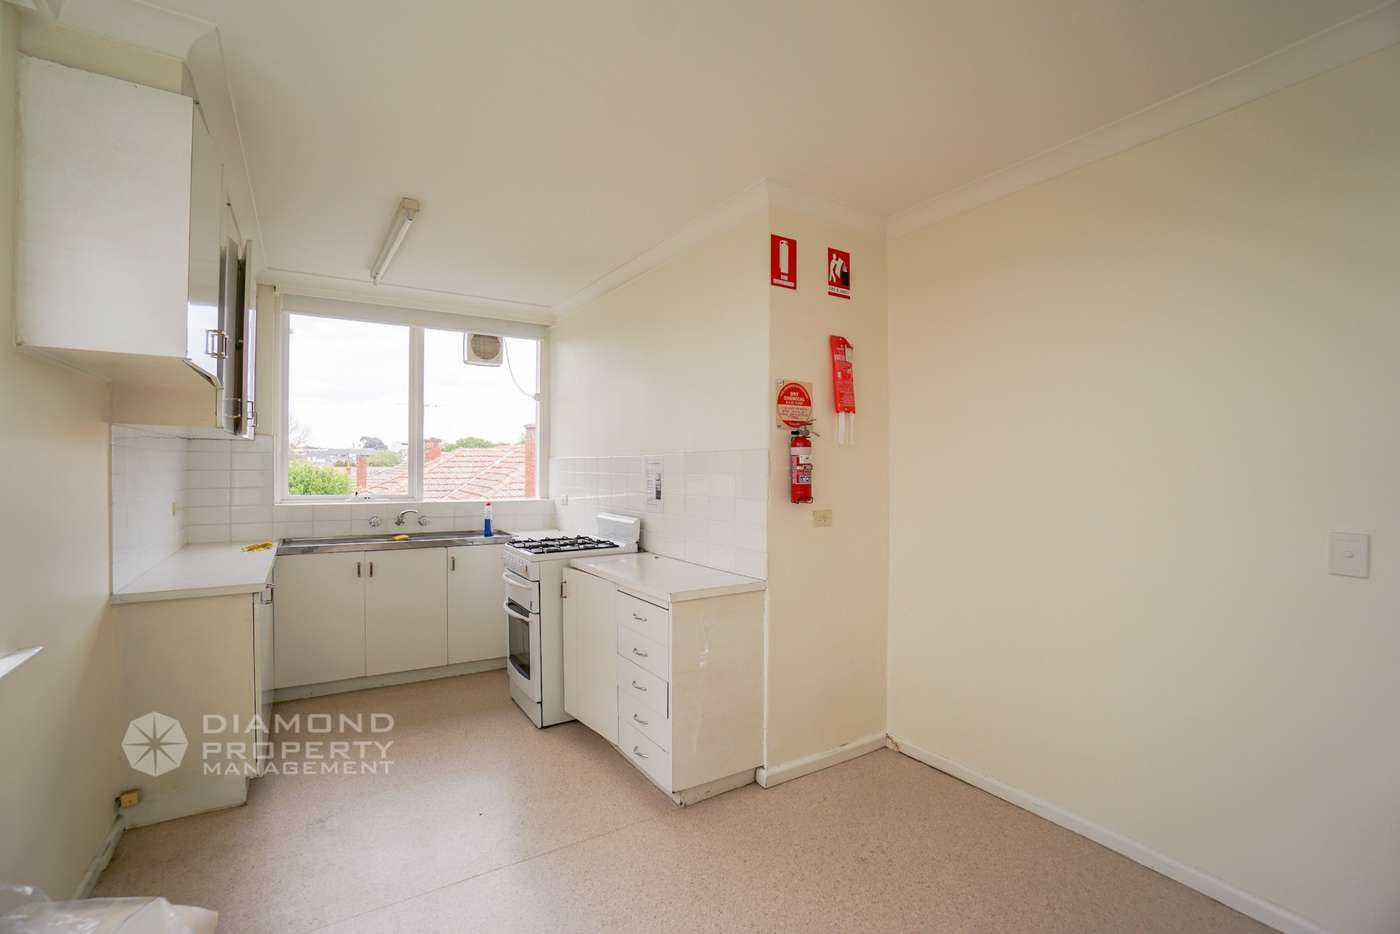 Fifth view of Homely apartment listing, 4/147 Tooronga Road, Glen Iris VIC 3146